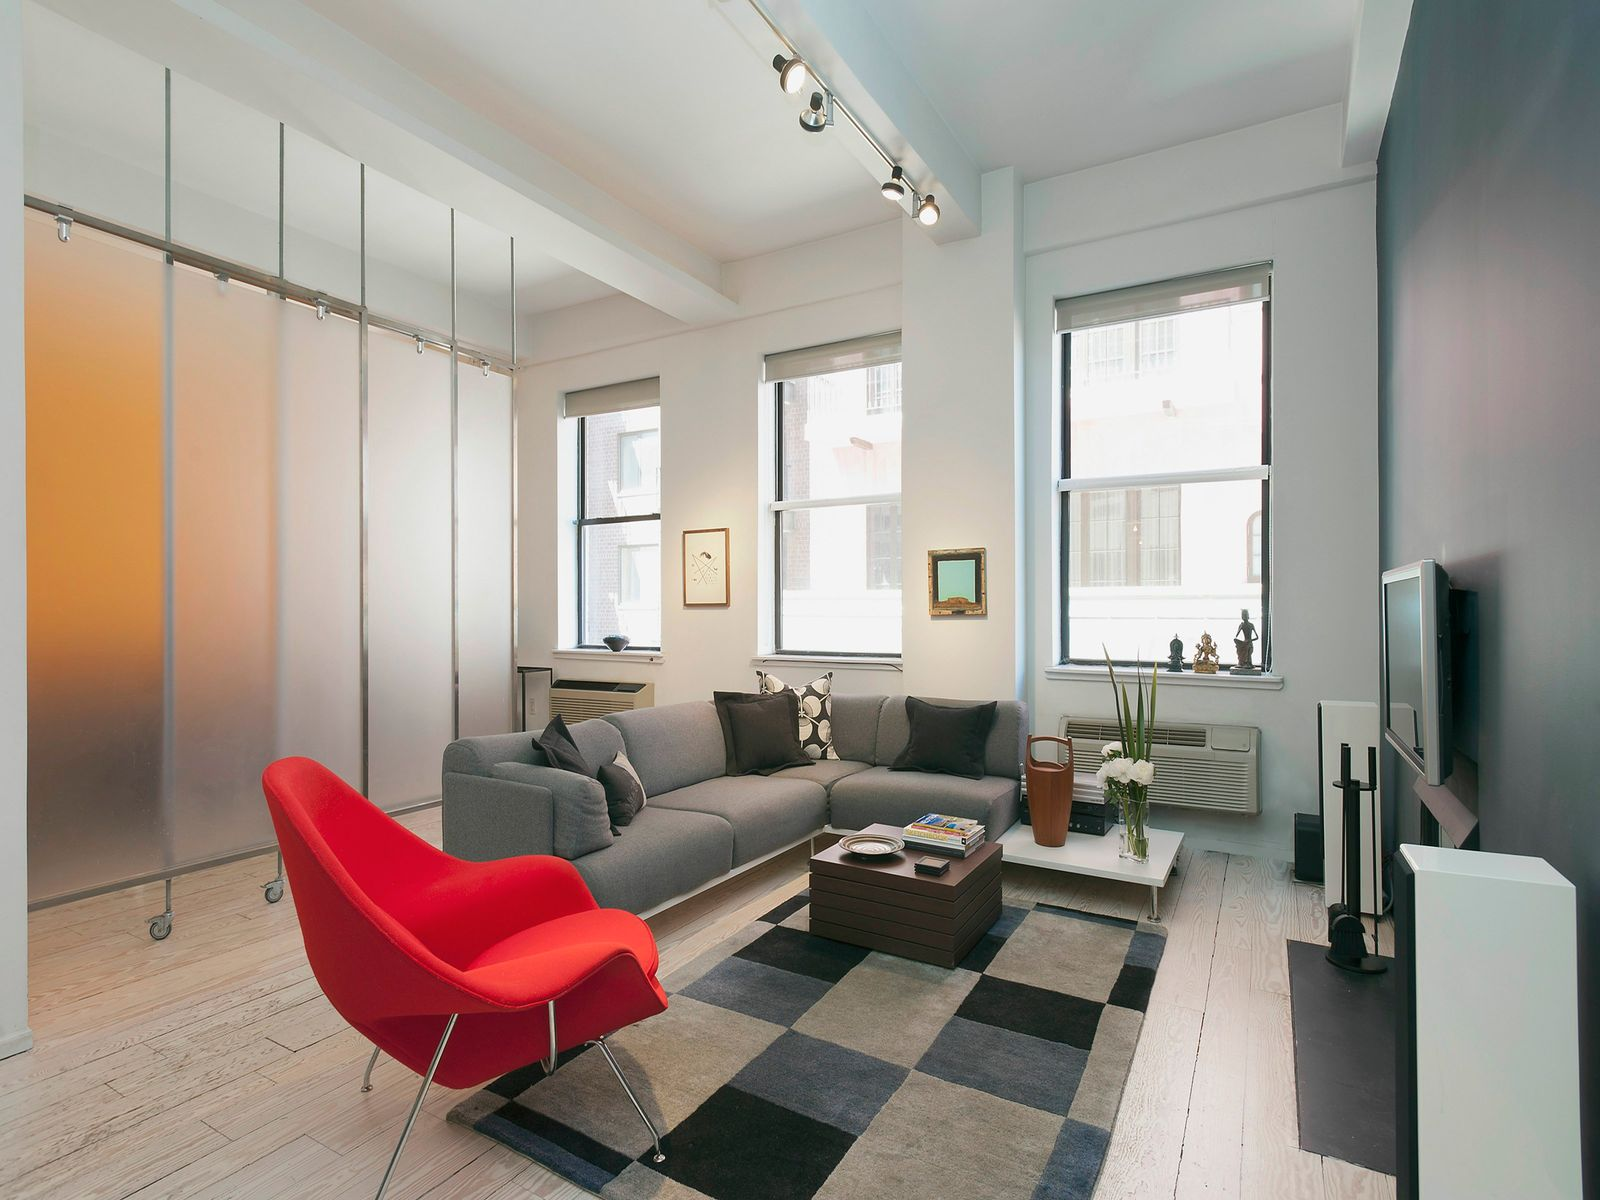 Condo Loft in Prime West Village, New York NY Condominium - New York City Real Estate